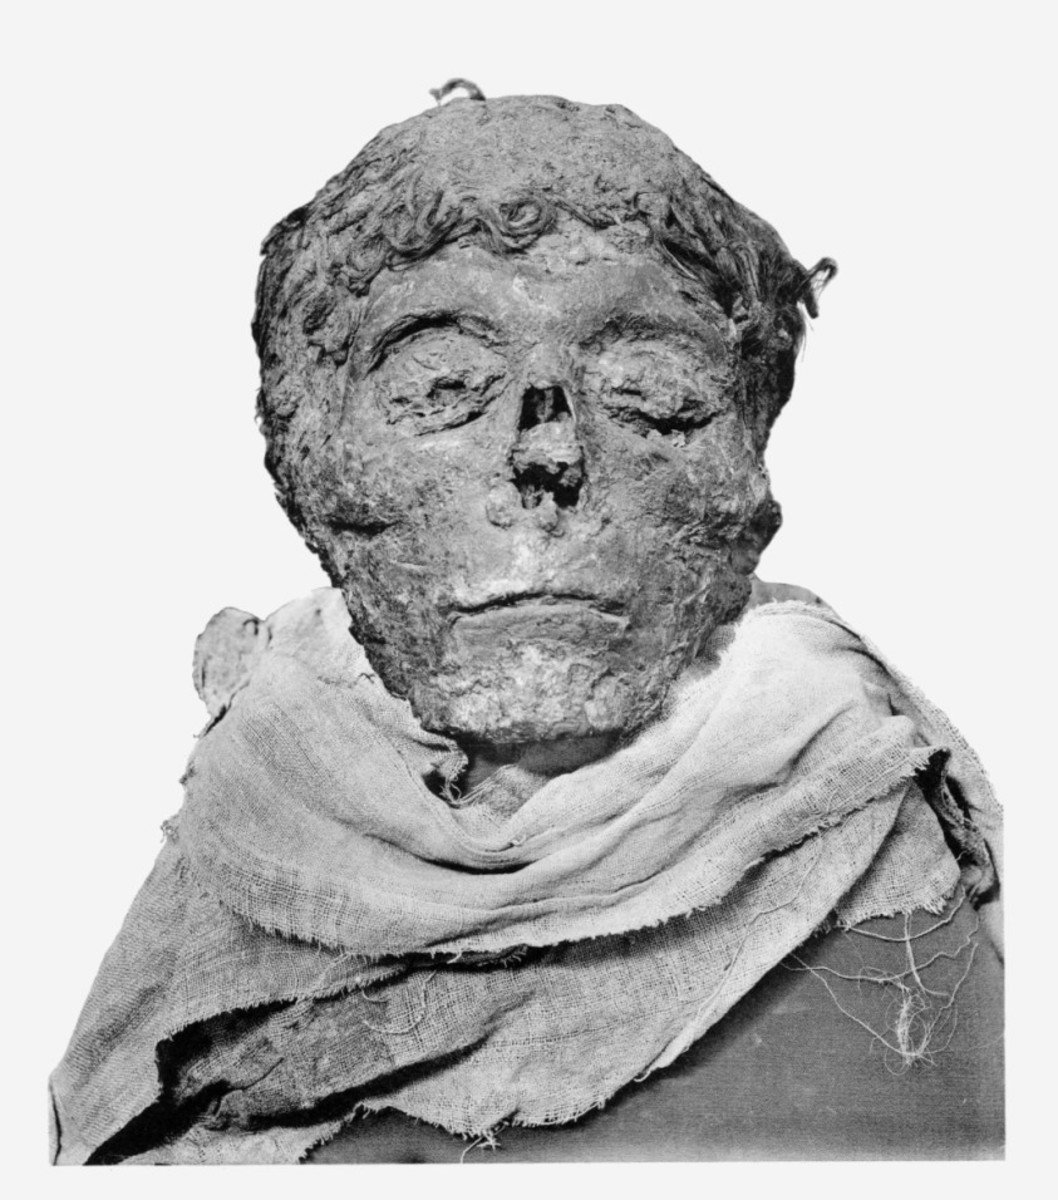 Mummy of Egyptian King Ahmose I, 15th century BCE